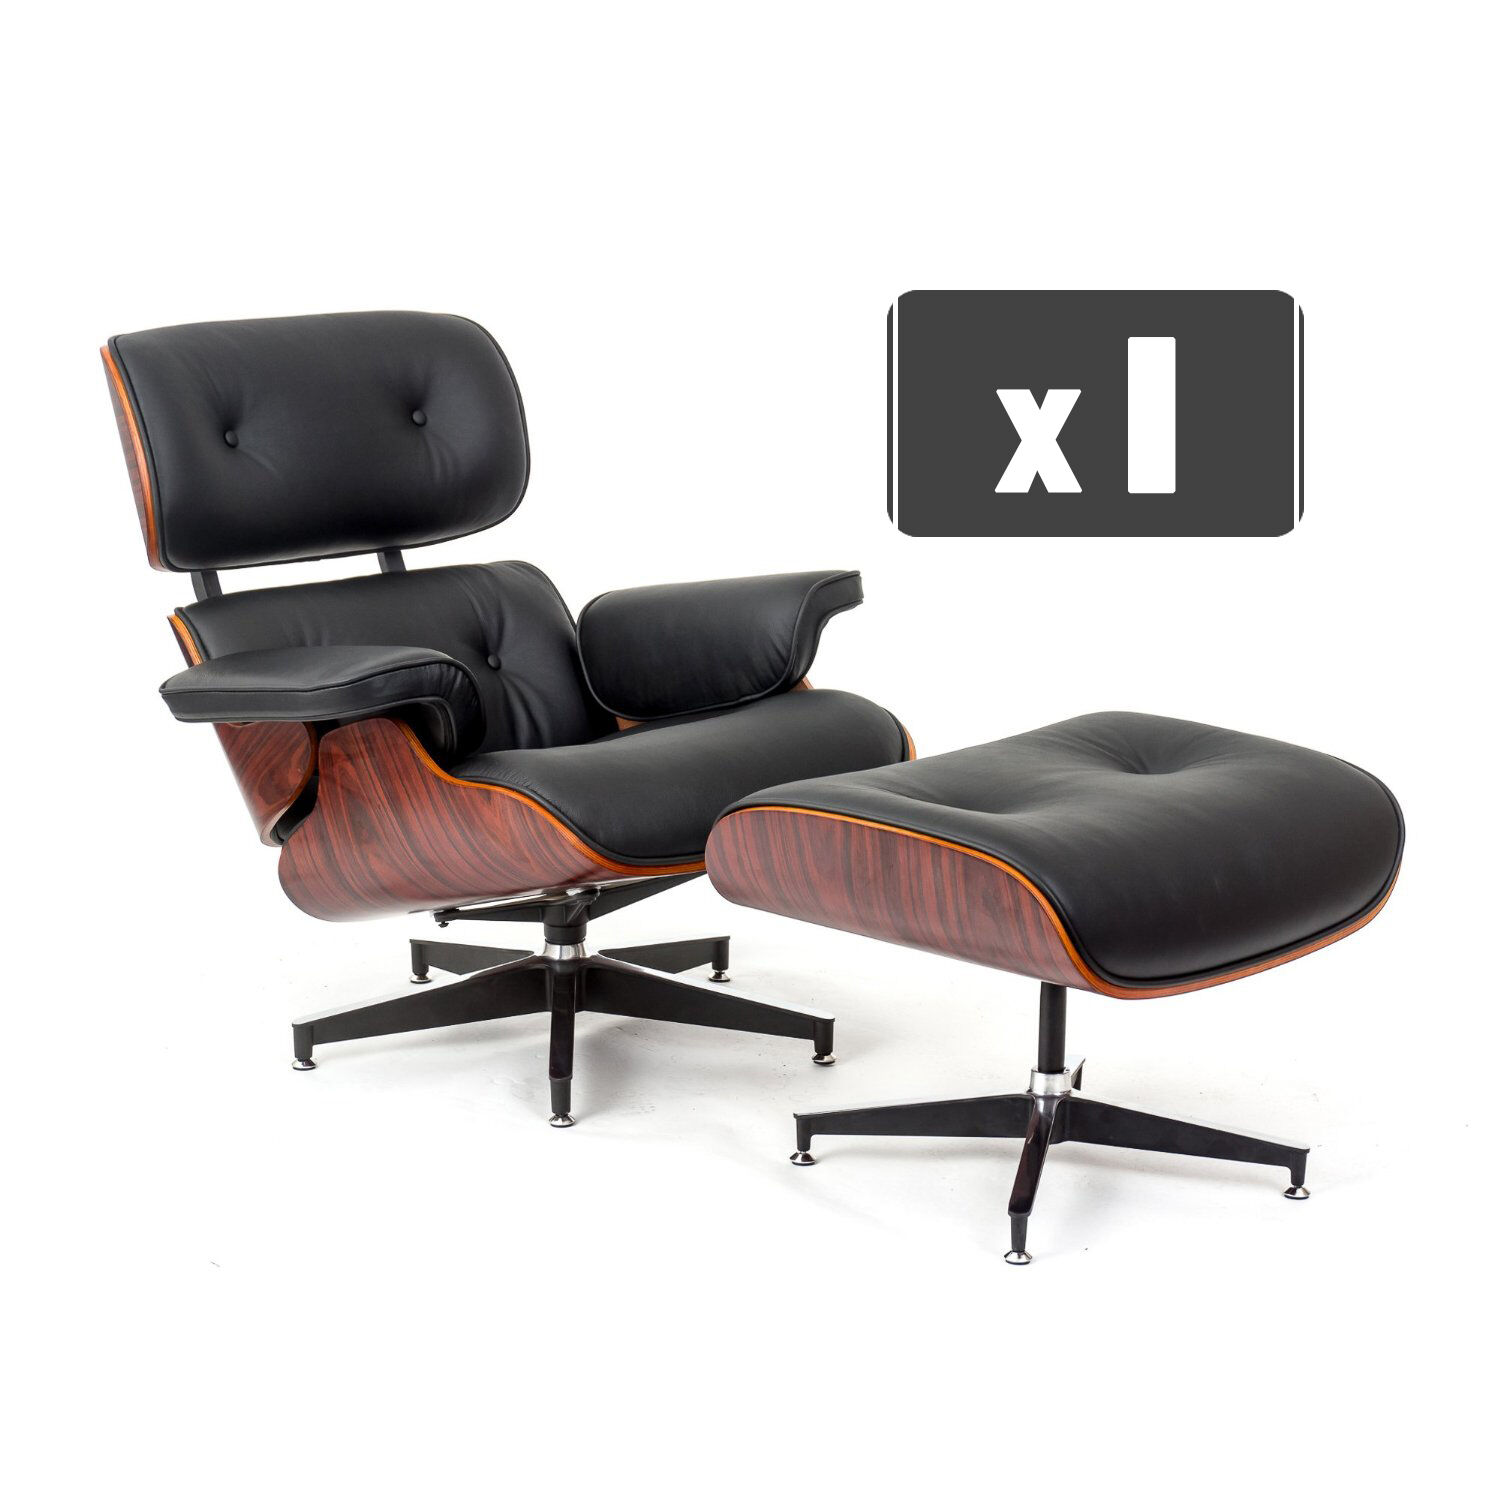 Replica charles eames lounge chair ottoman in black for Lounge chair replica erfahrungen